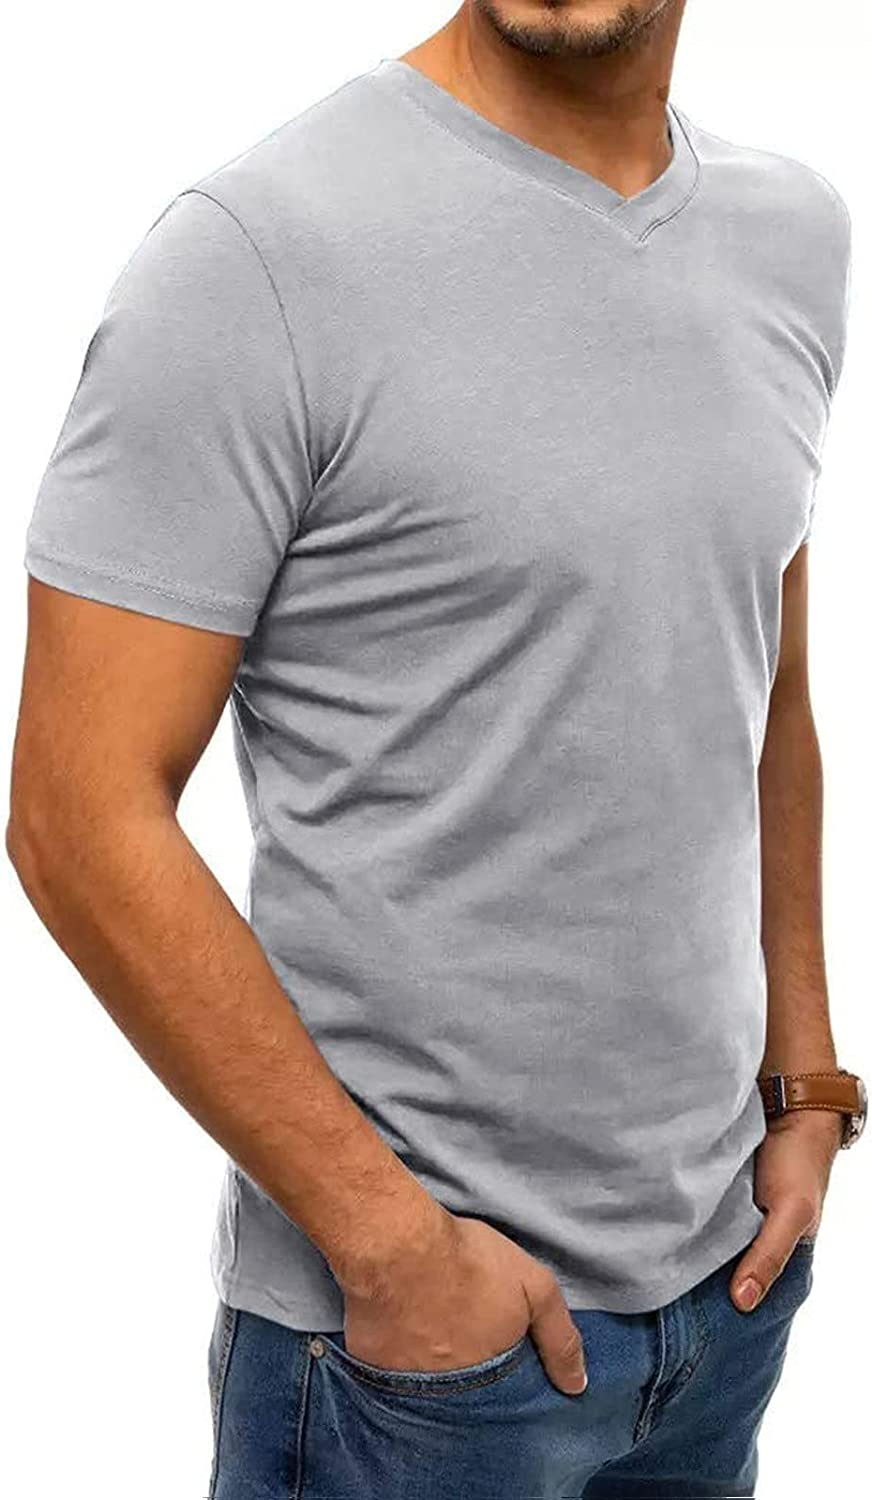 Men's Fashion Pure Color Tops Casual Short Sleeve Henley T-Shirts Cotton Shirts